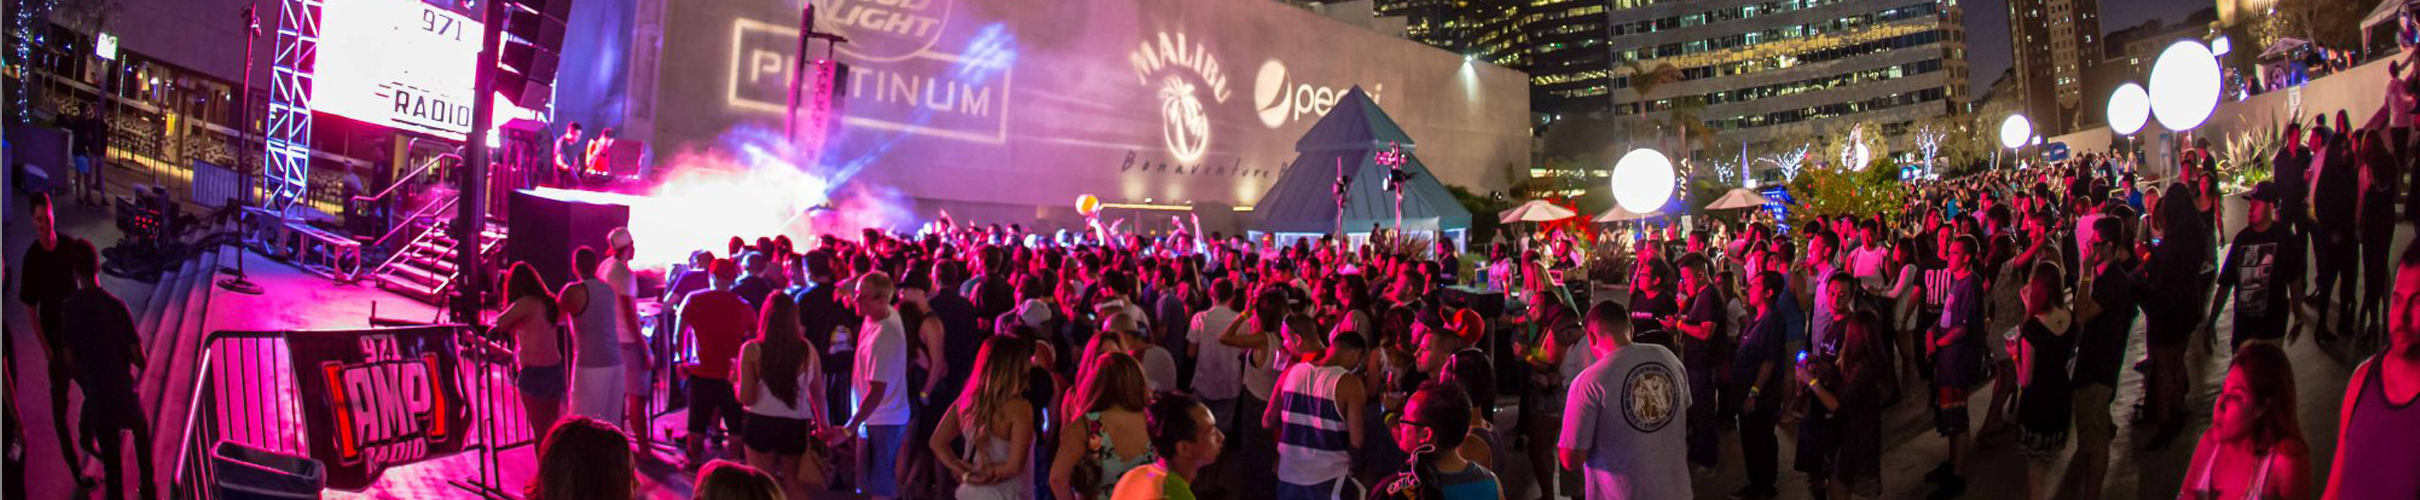 AMP-Radio-Topless-Summer-Tiesto-P2-Entertainment-Group-Event-Concert-Production